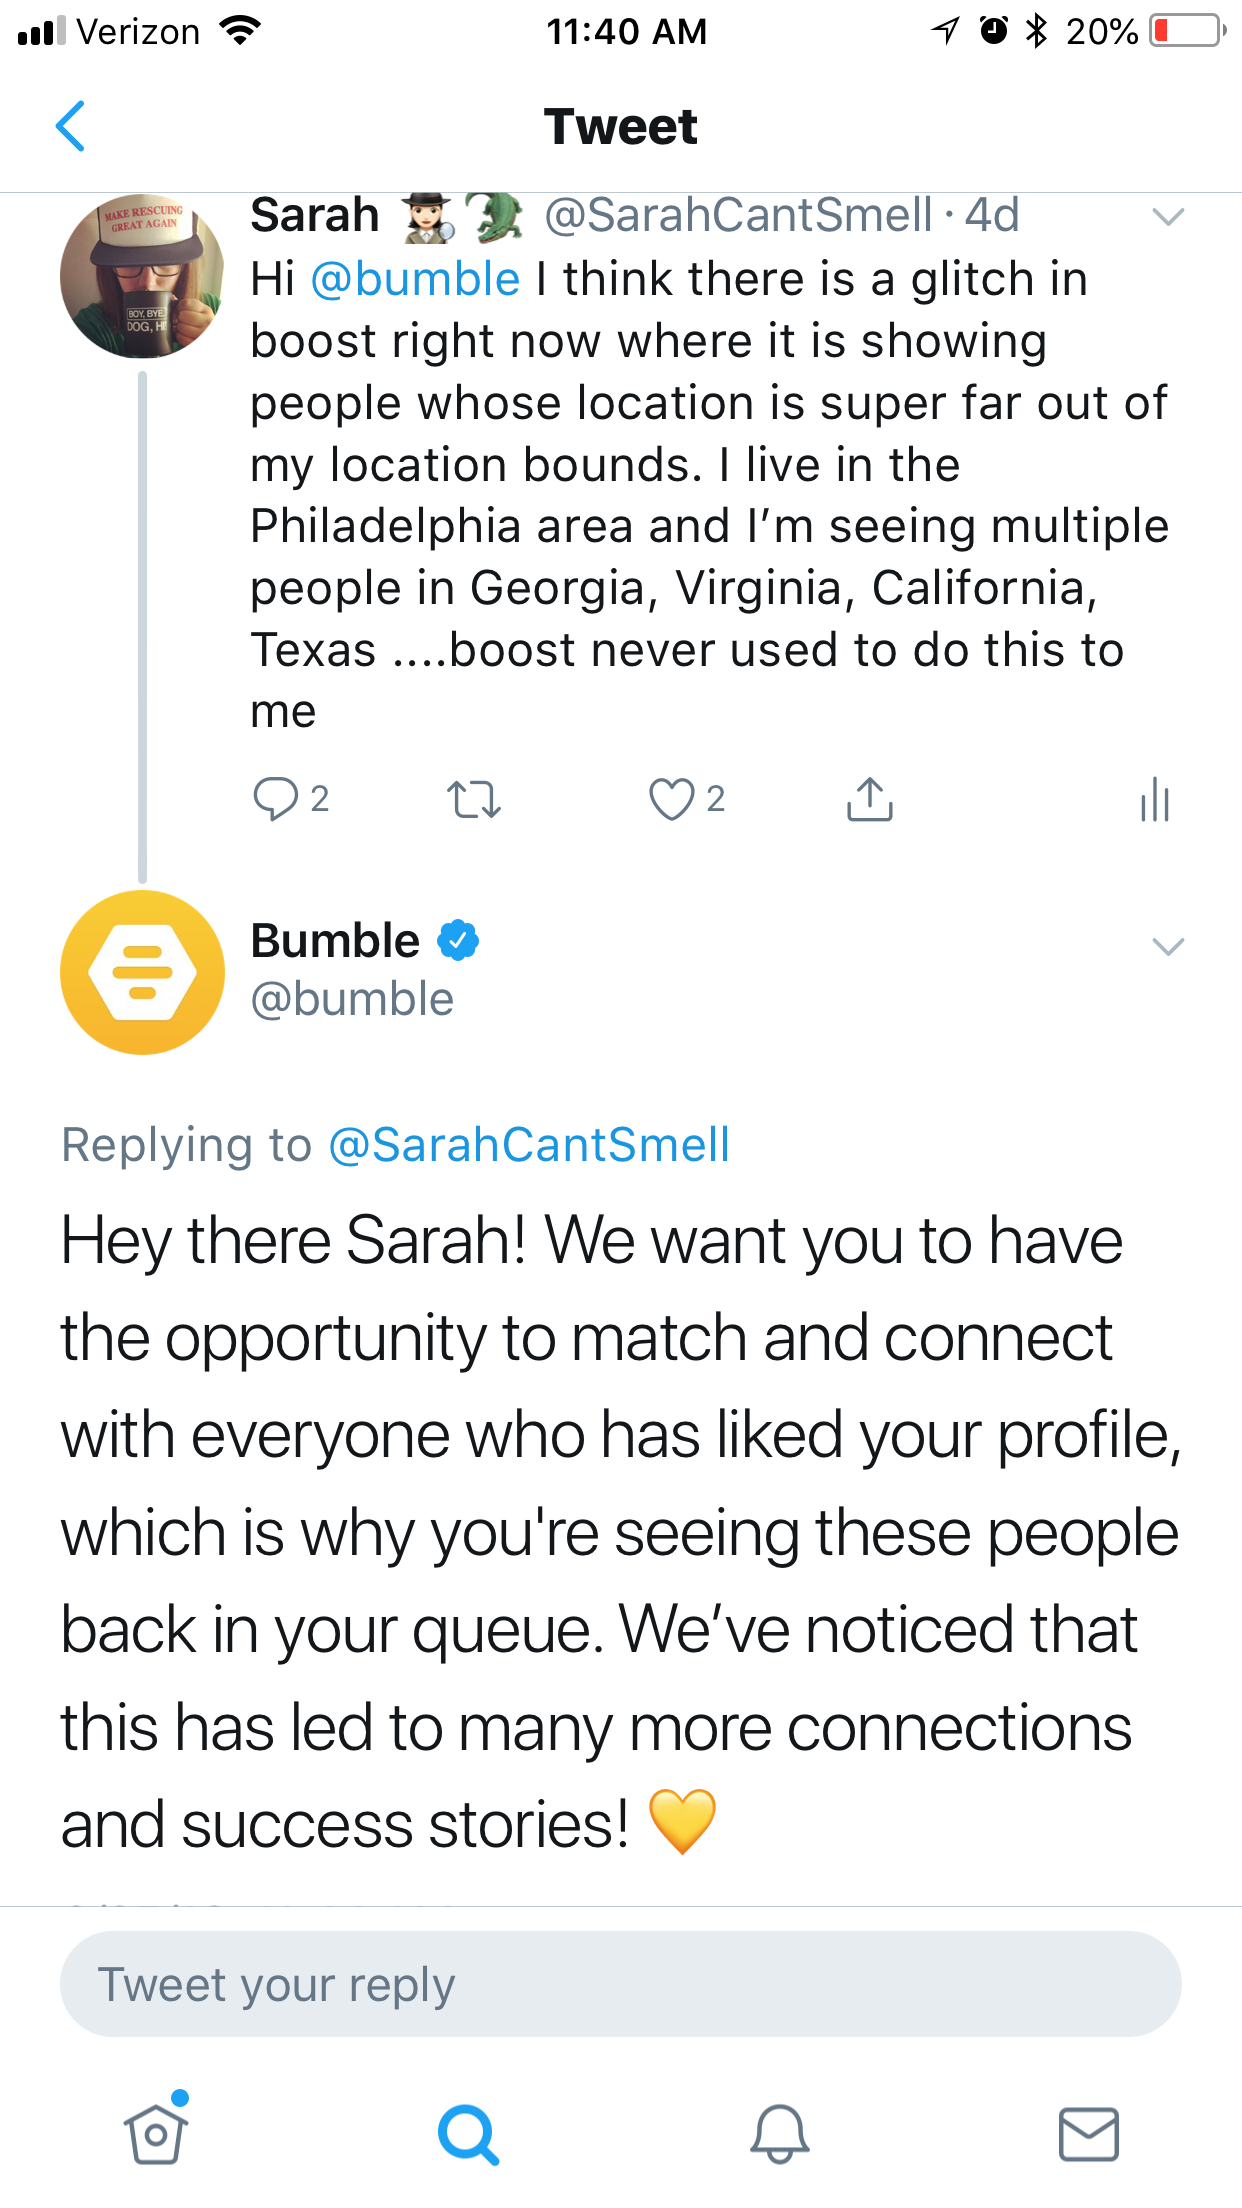 Is Bumble Straying Too Far From Its Roots? - Sarah - Medium